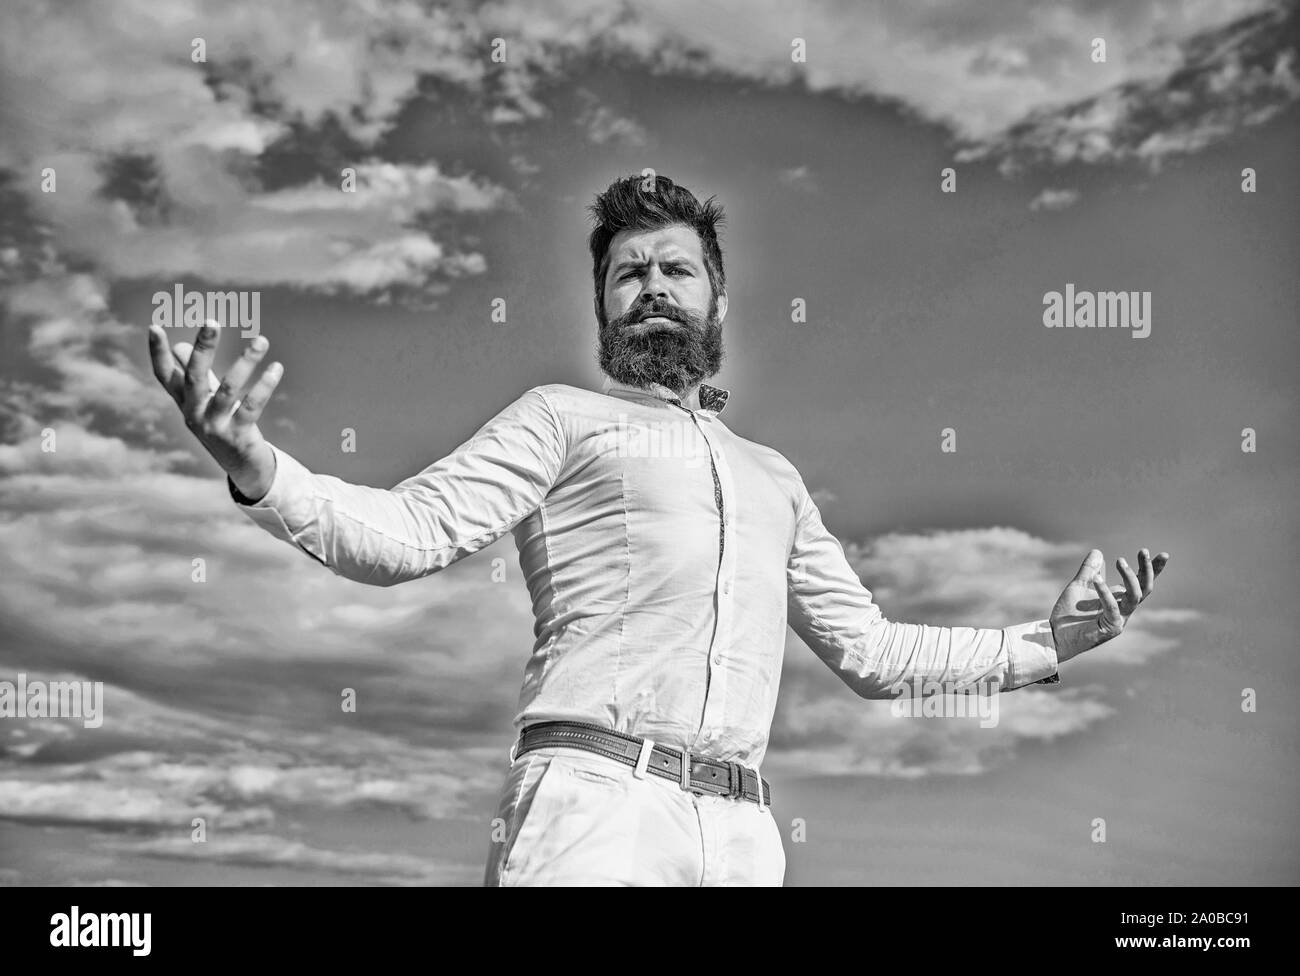 Self proud feeling. Hipster beard and mustache looks attractive white shirt. Guy enjoy top achievement. Superiority and power. Man bearded hipster formal clothes feels proud of himself sky background. Stock Photo